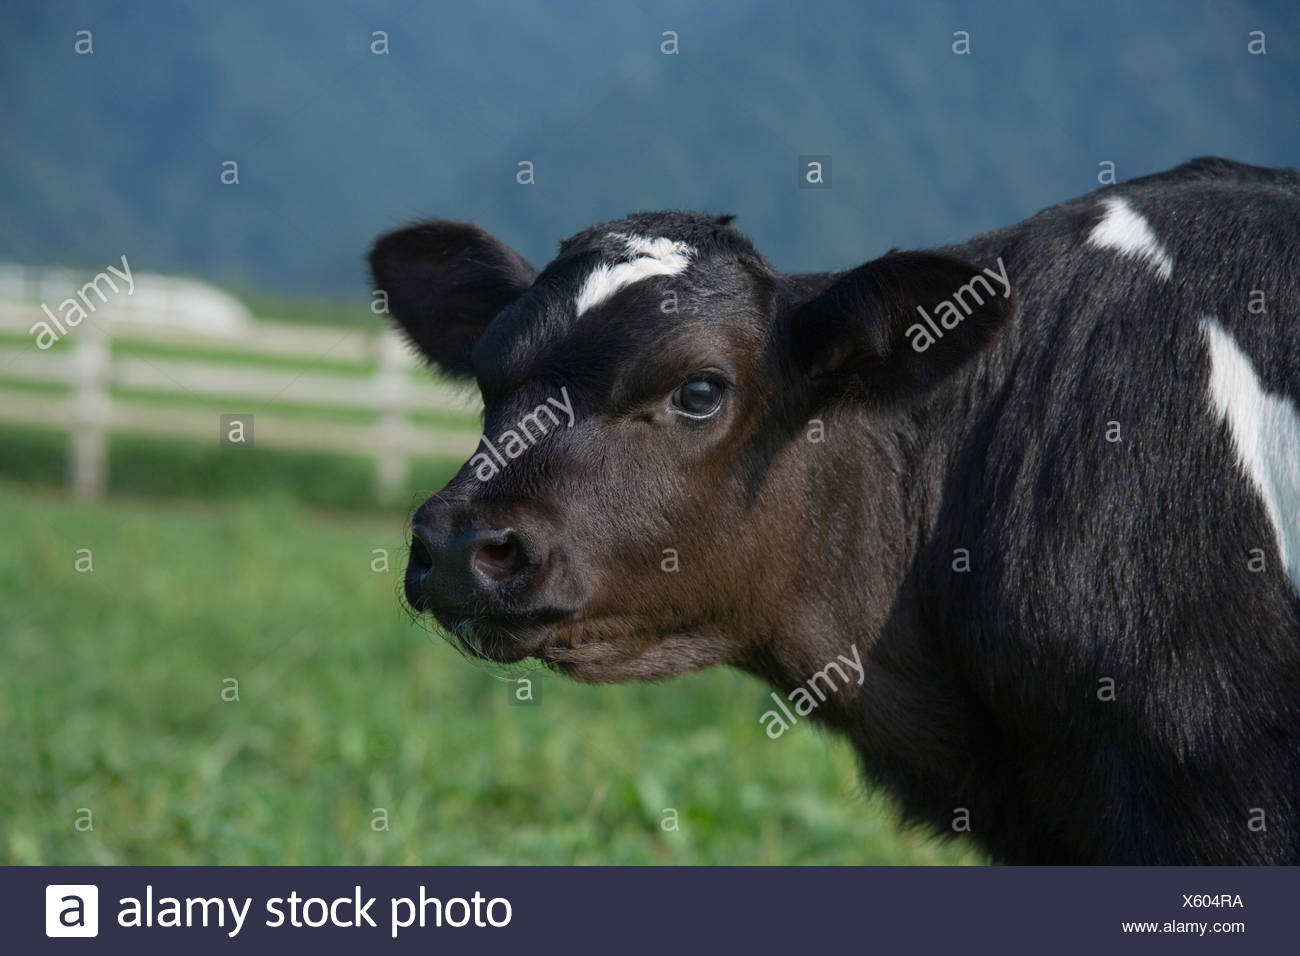 Cow standing in farm - Stock Image